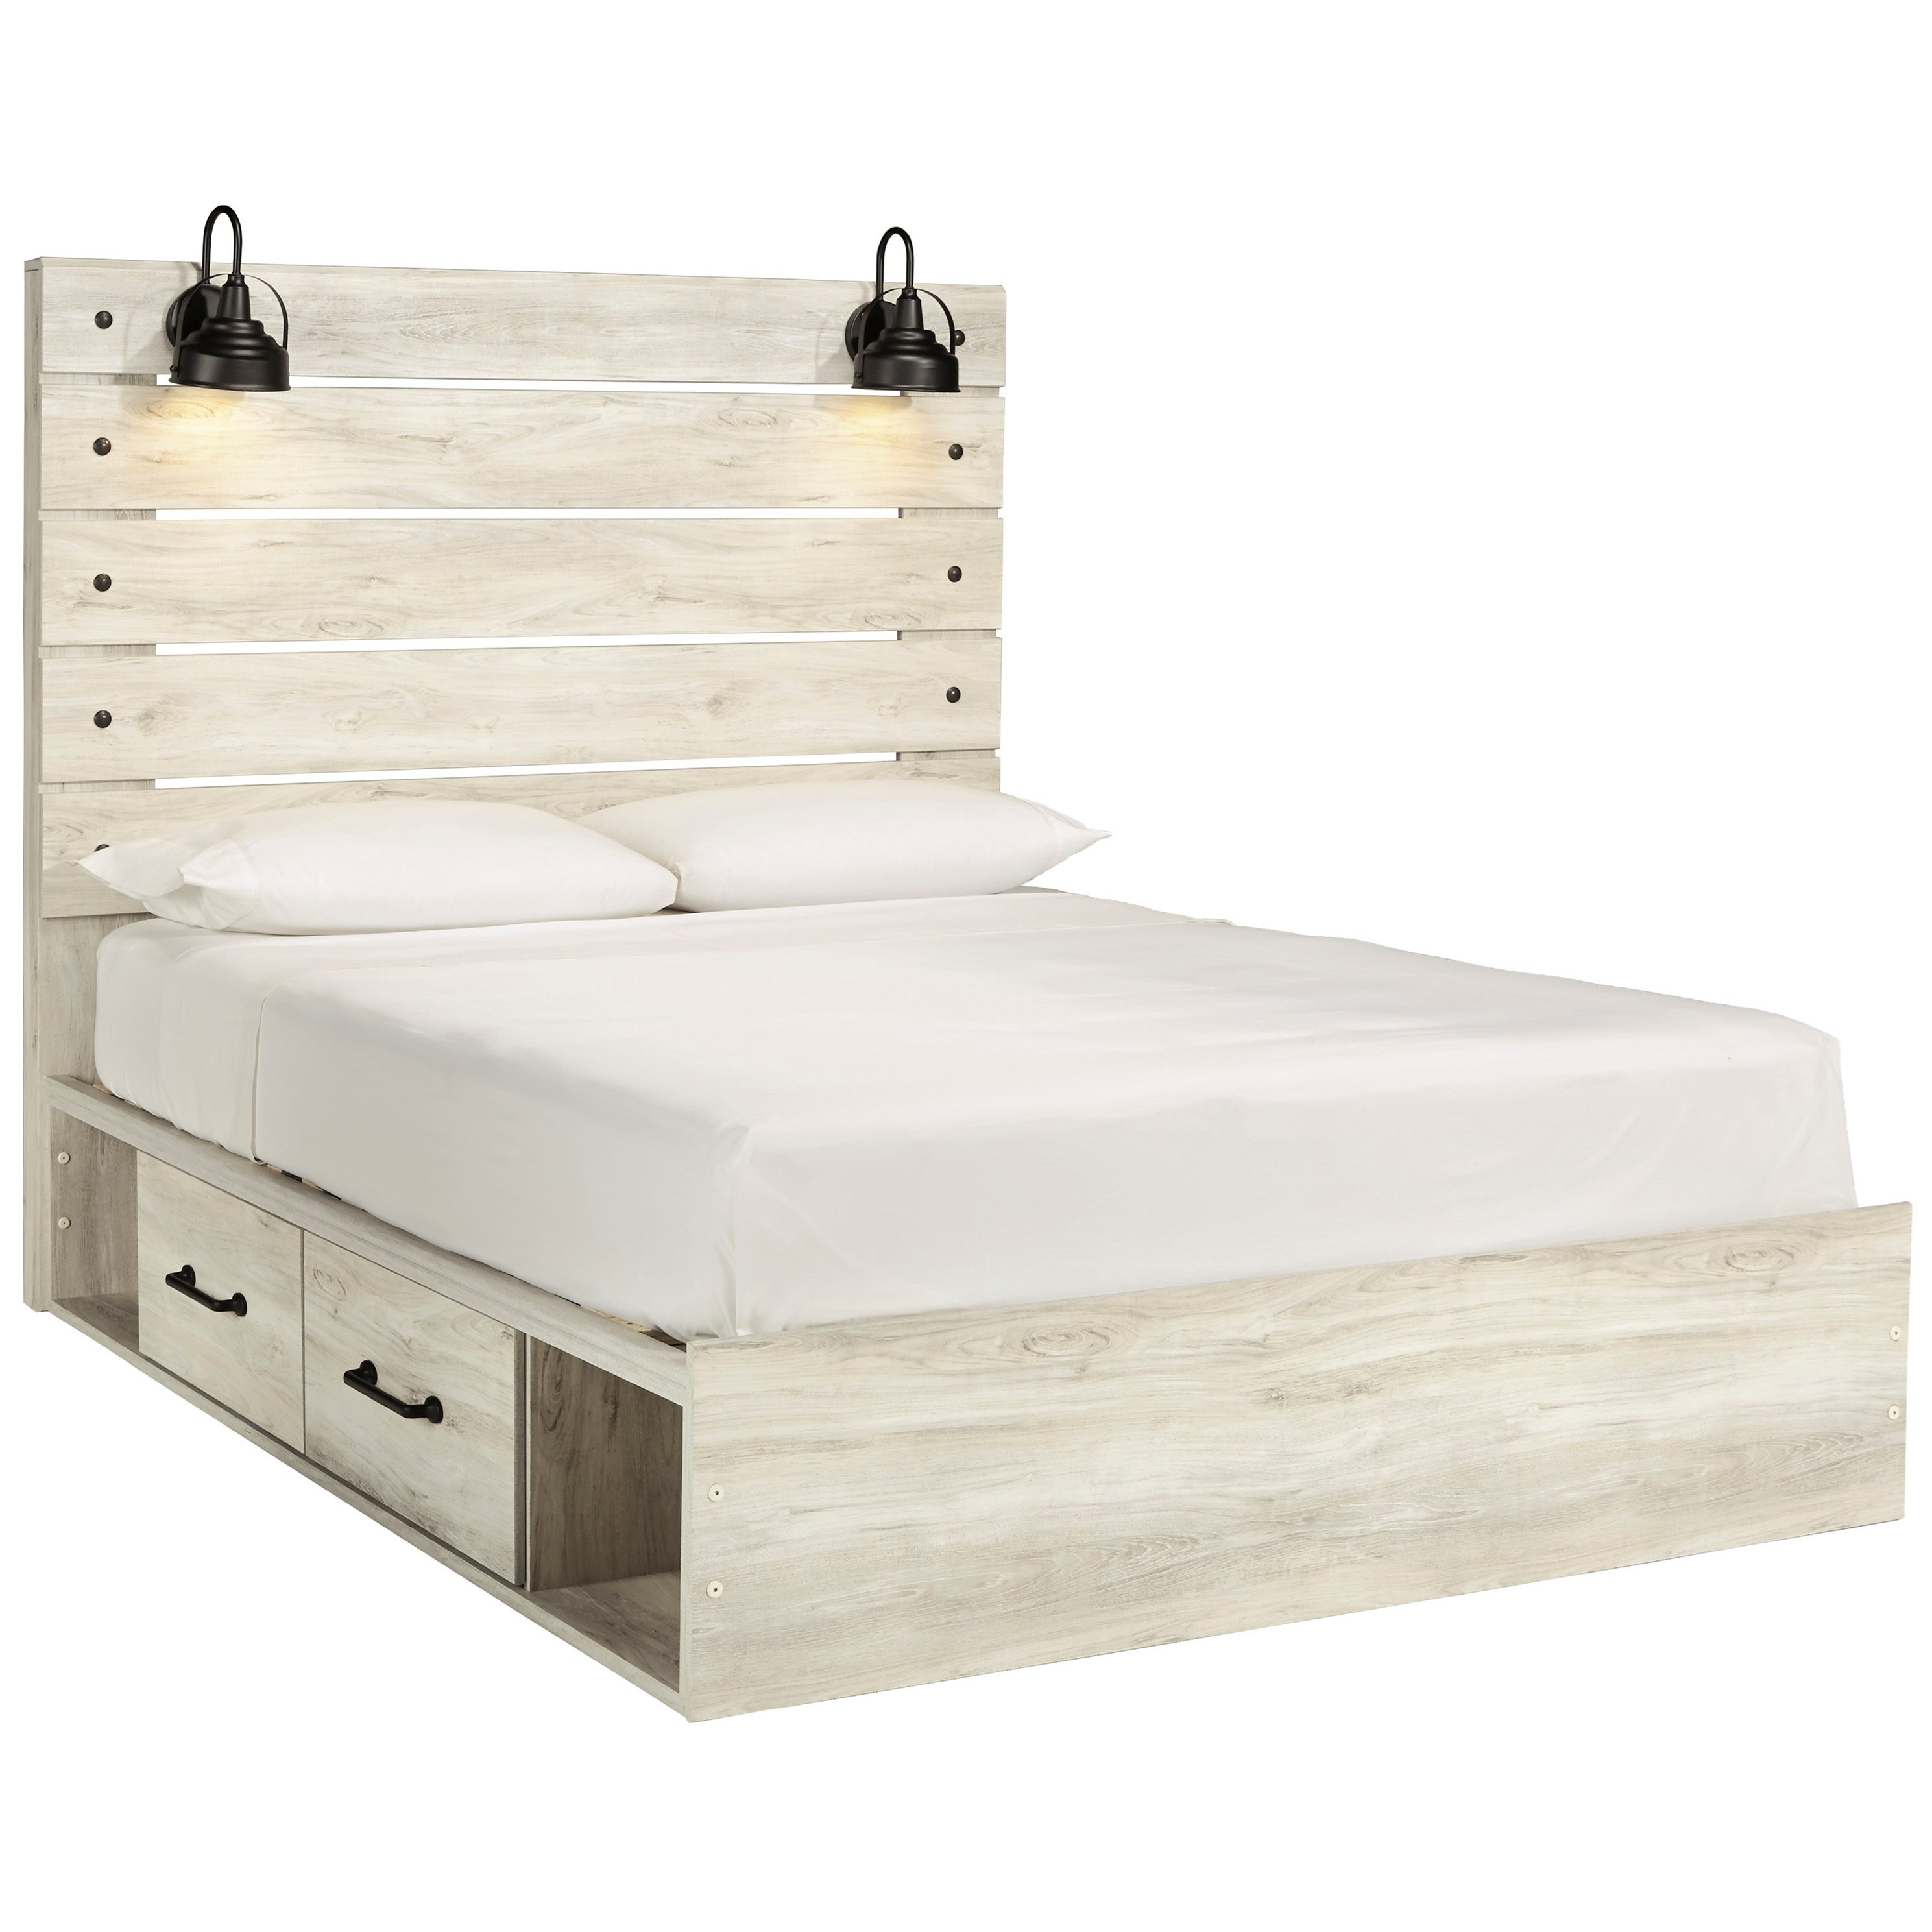 Ashley Furniture Signature Design Cambeck Rustic Queen Storage Bed With 2 Drawers Industrial Lights Del Sol Furniture Platform Beds Low Profile Beds